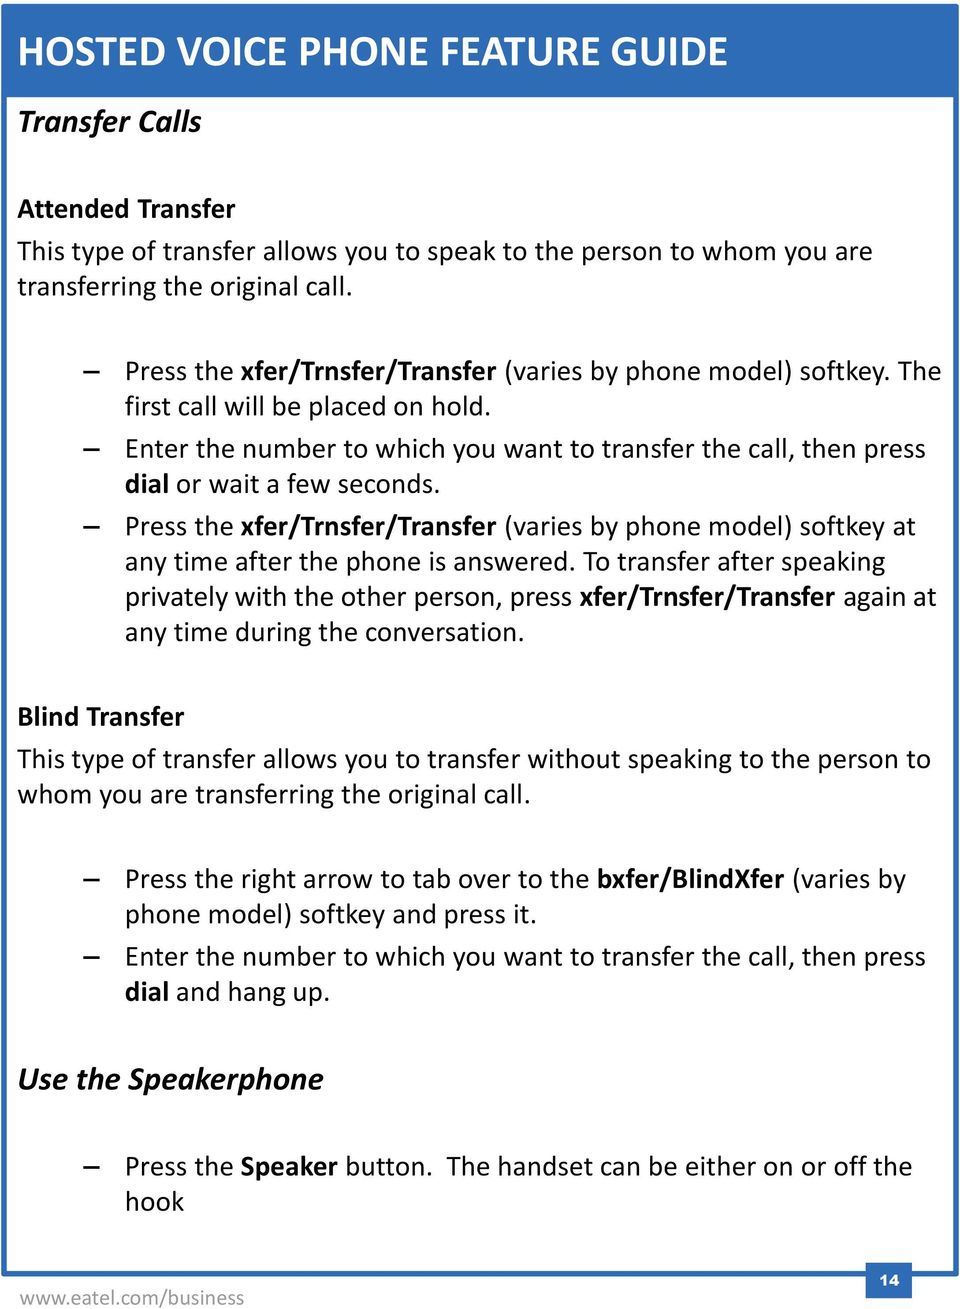 Press the xfer/trnsfer/transfer (varies by phone model) softkey at any time after the phone is answered.